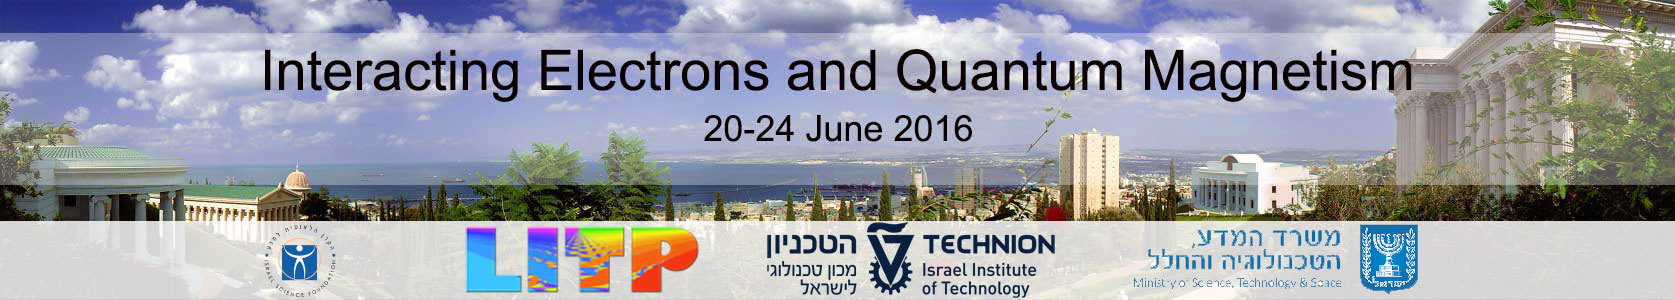 Interacting Electrons and Quantum Magnetism 20-24 june 2016 - banner